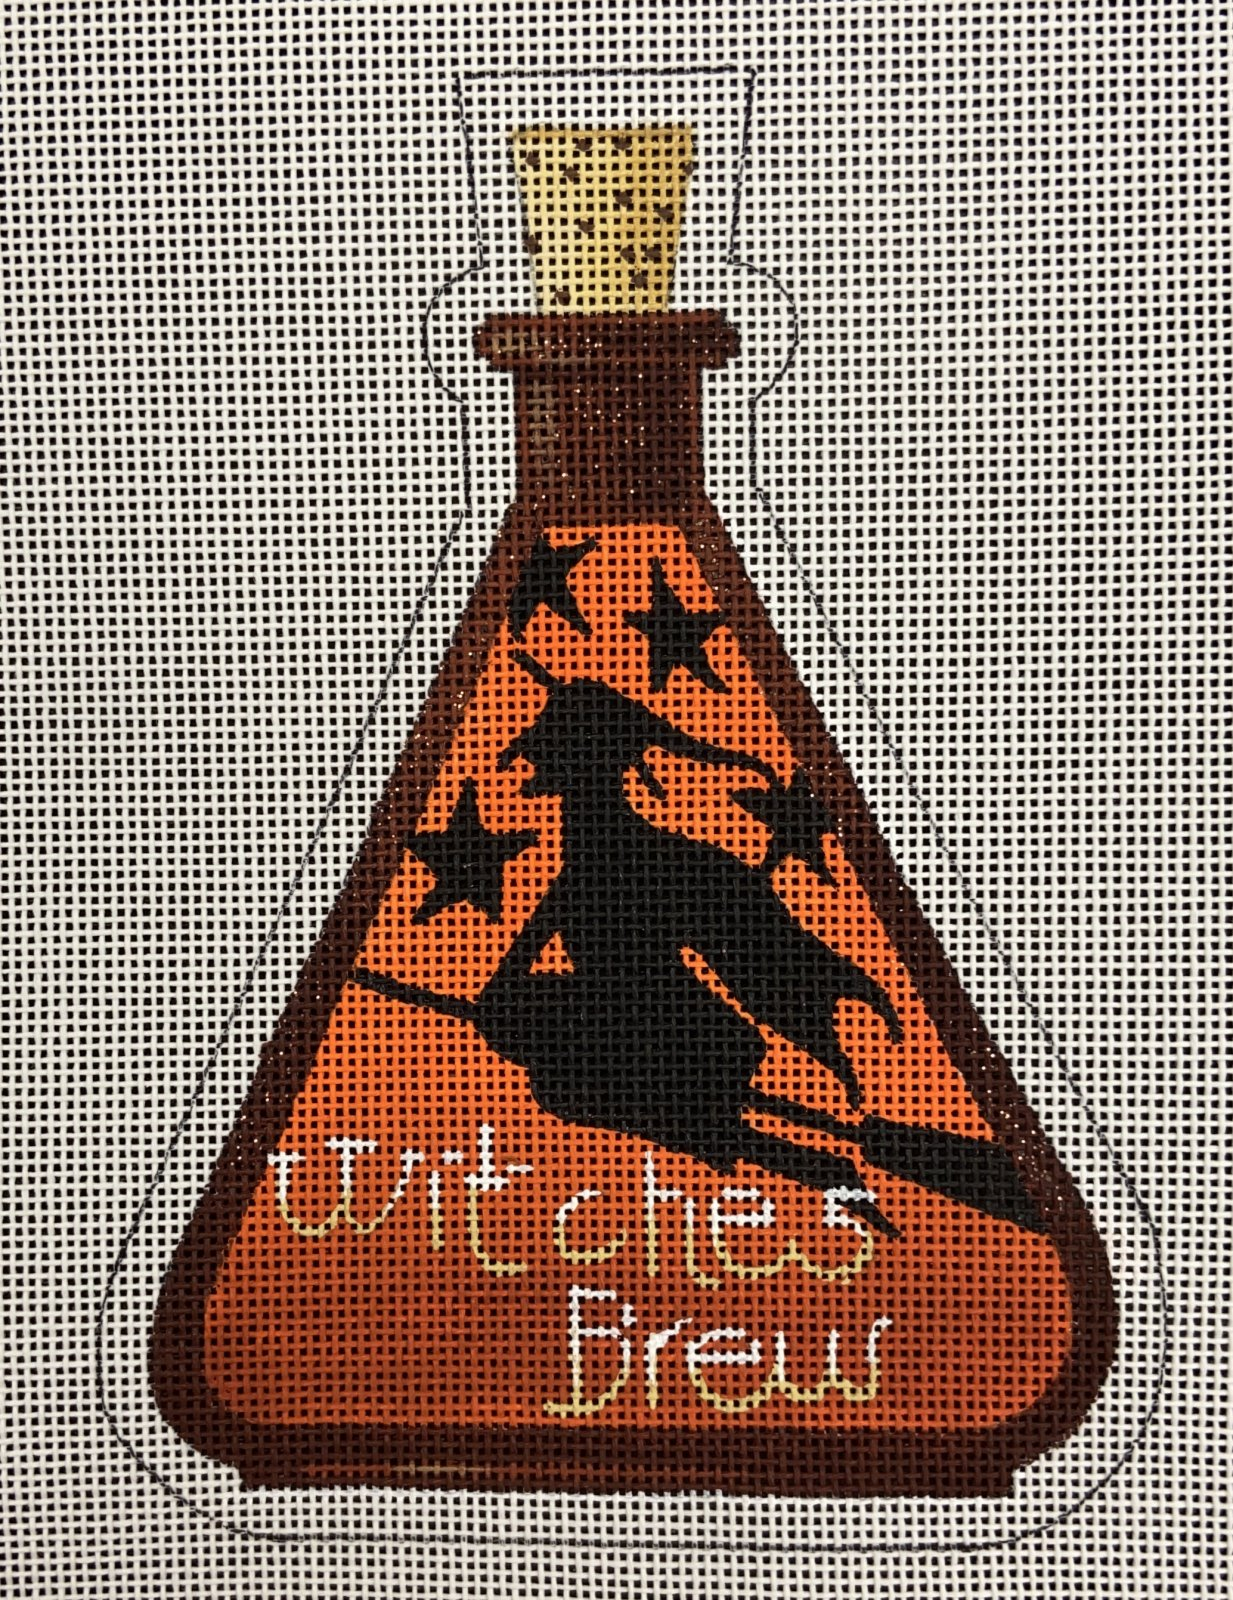 KB321 Witches Brew Halloween Bottle Stand Up Ornament Kirk & Bradley